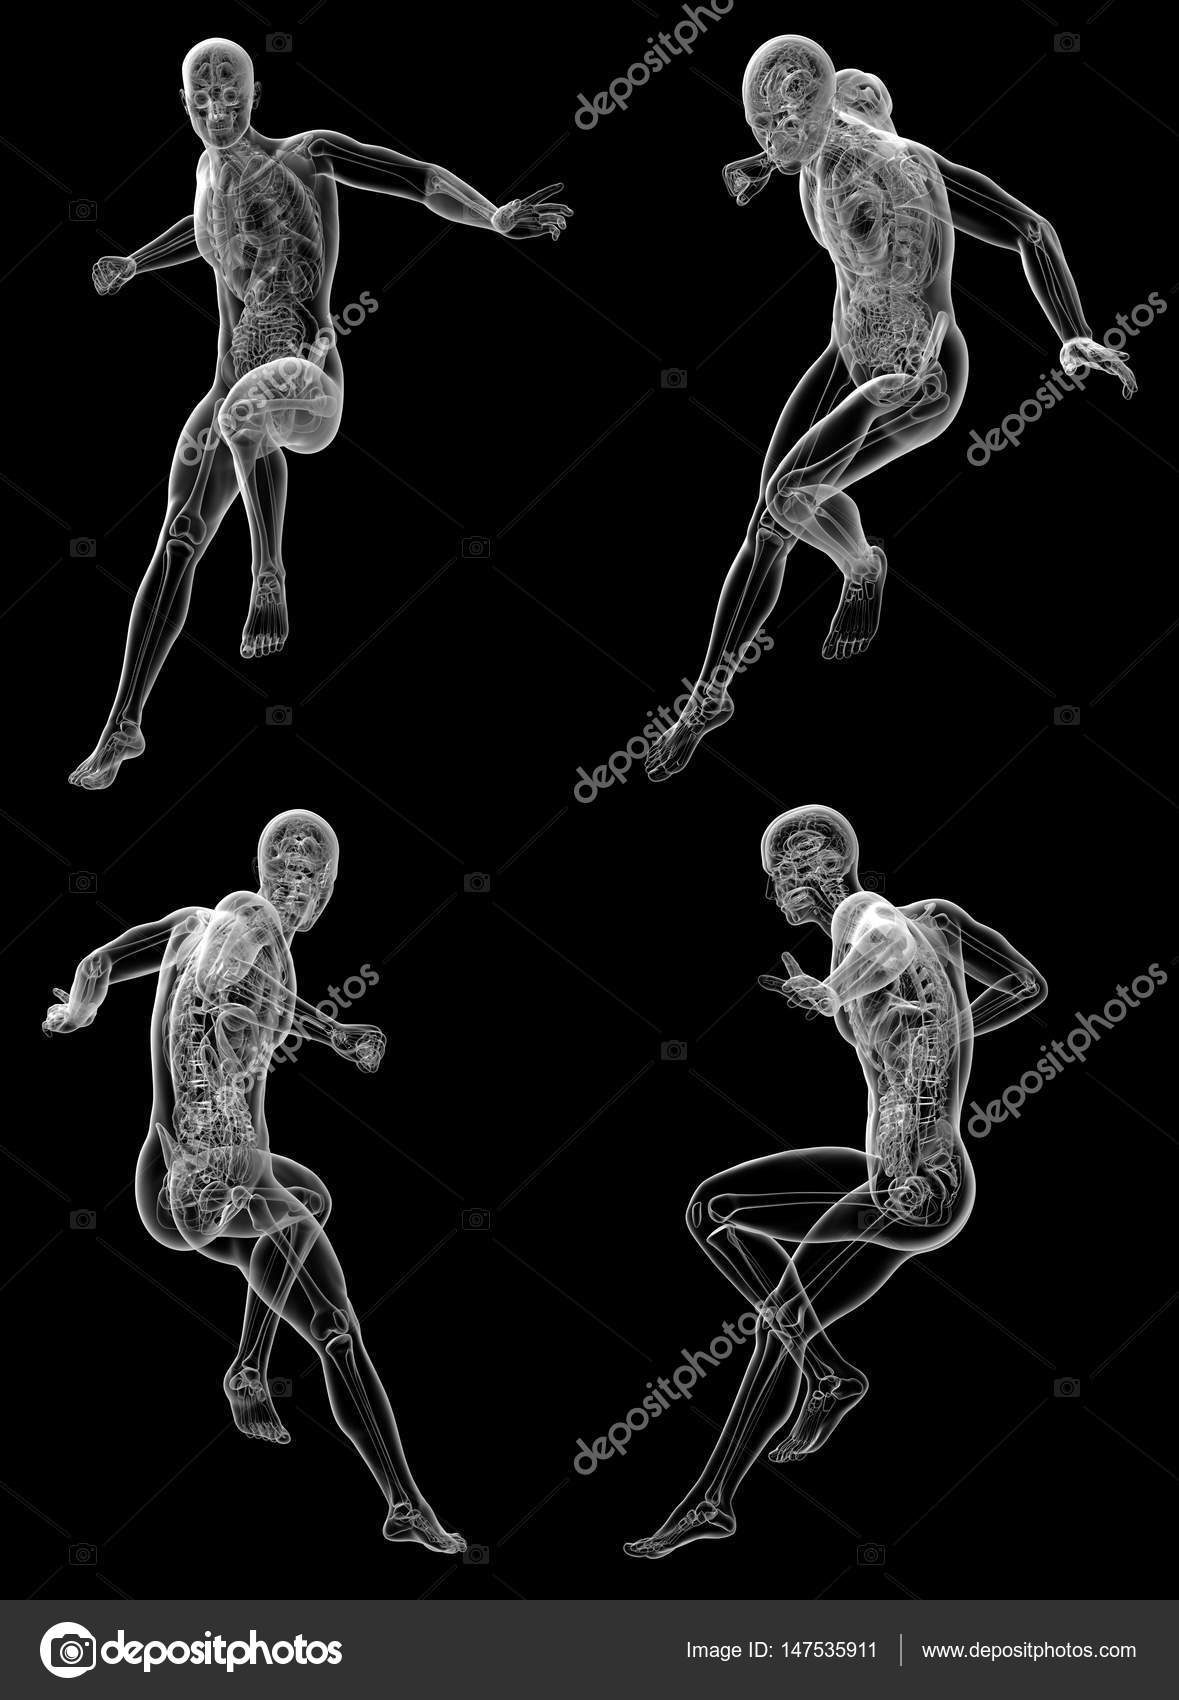 3d Rendering Medical Illustration Of The Human Anatomy Stock Photo